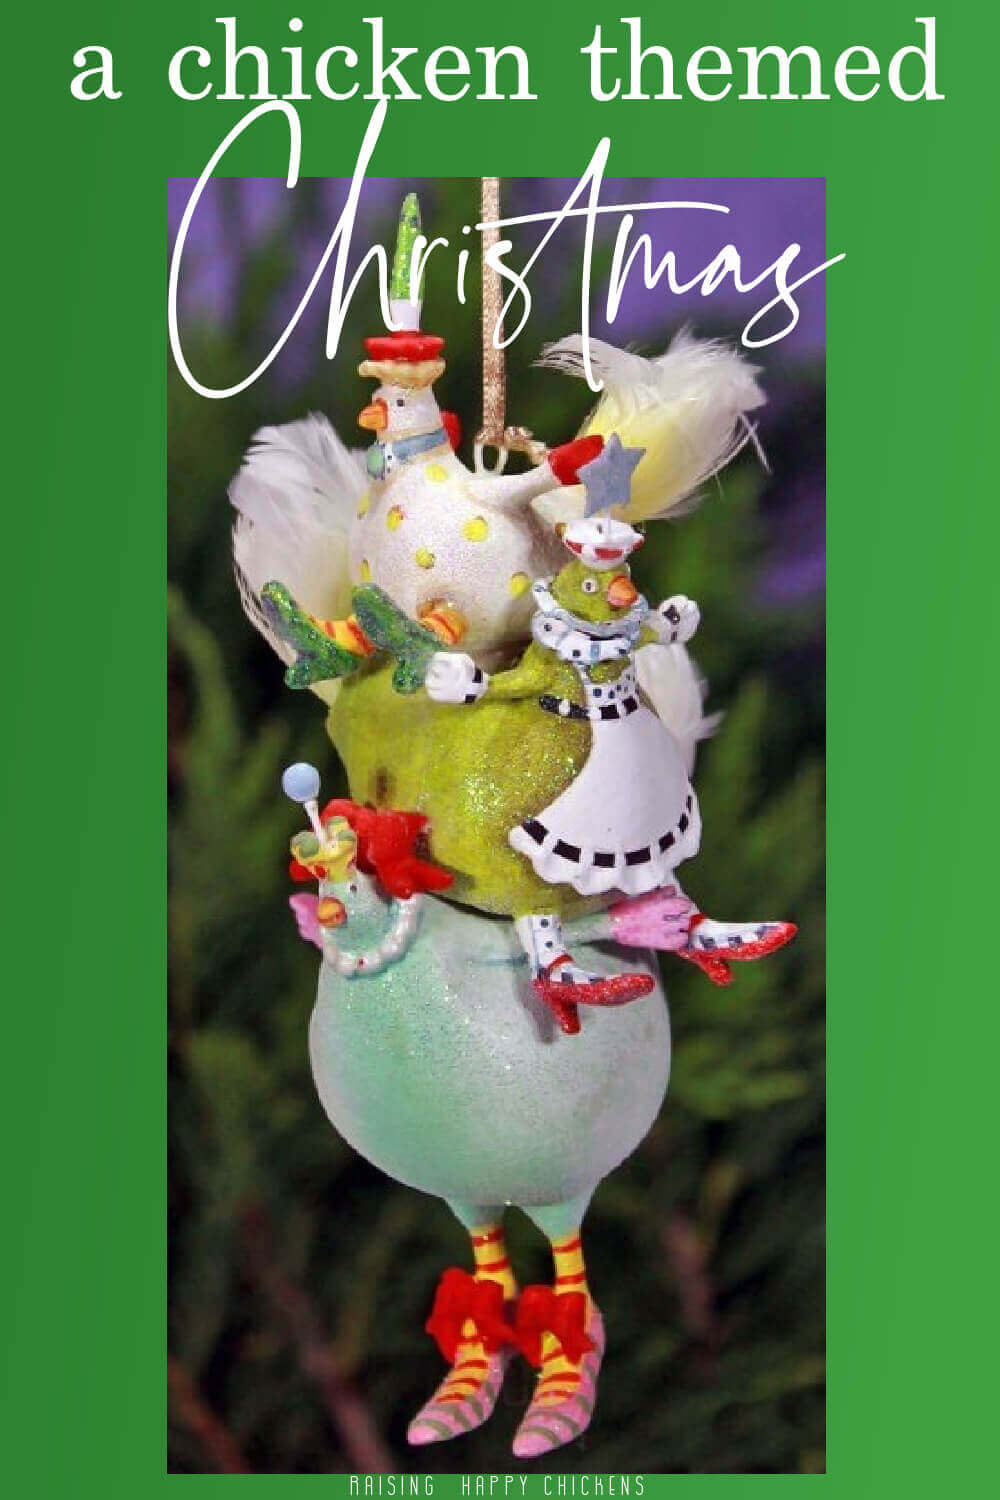 Looking for chicken-themed Christmas tree ornaments? Here's a great selection!